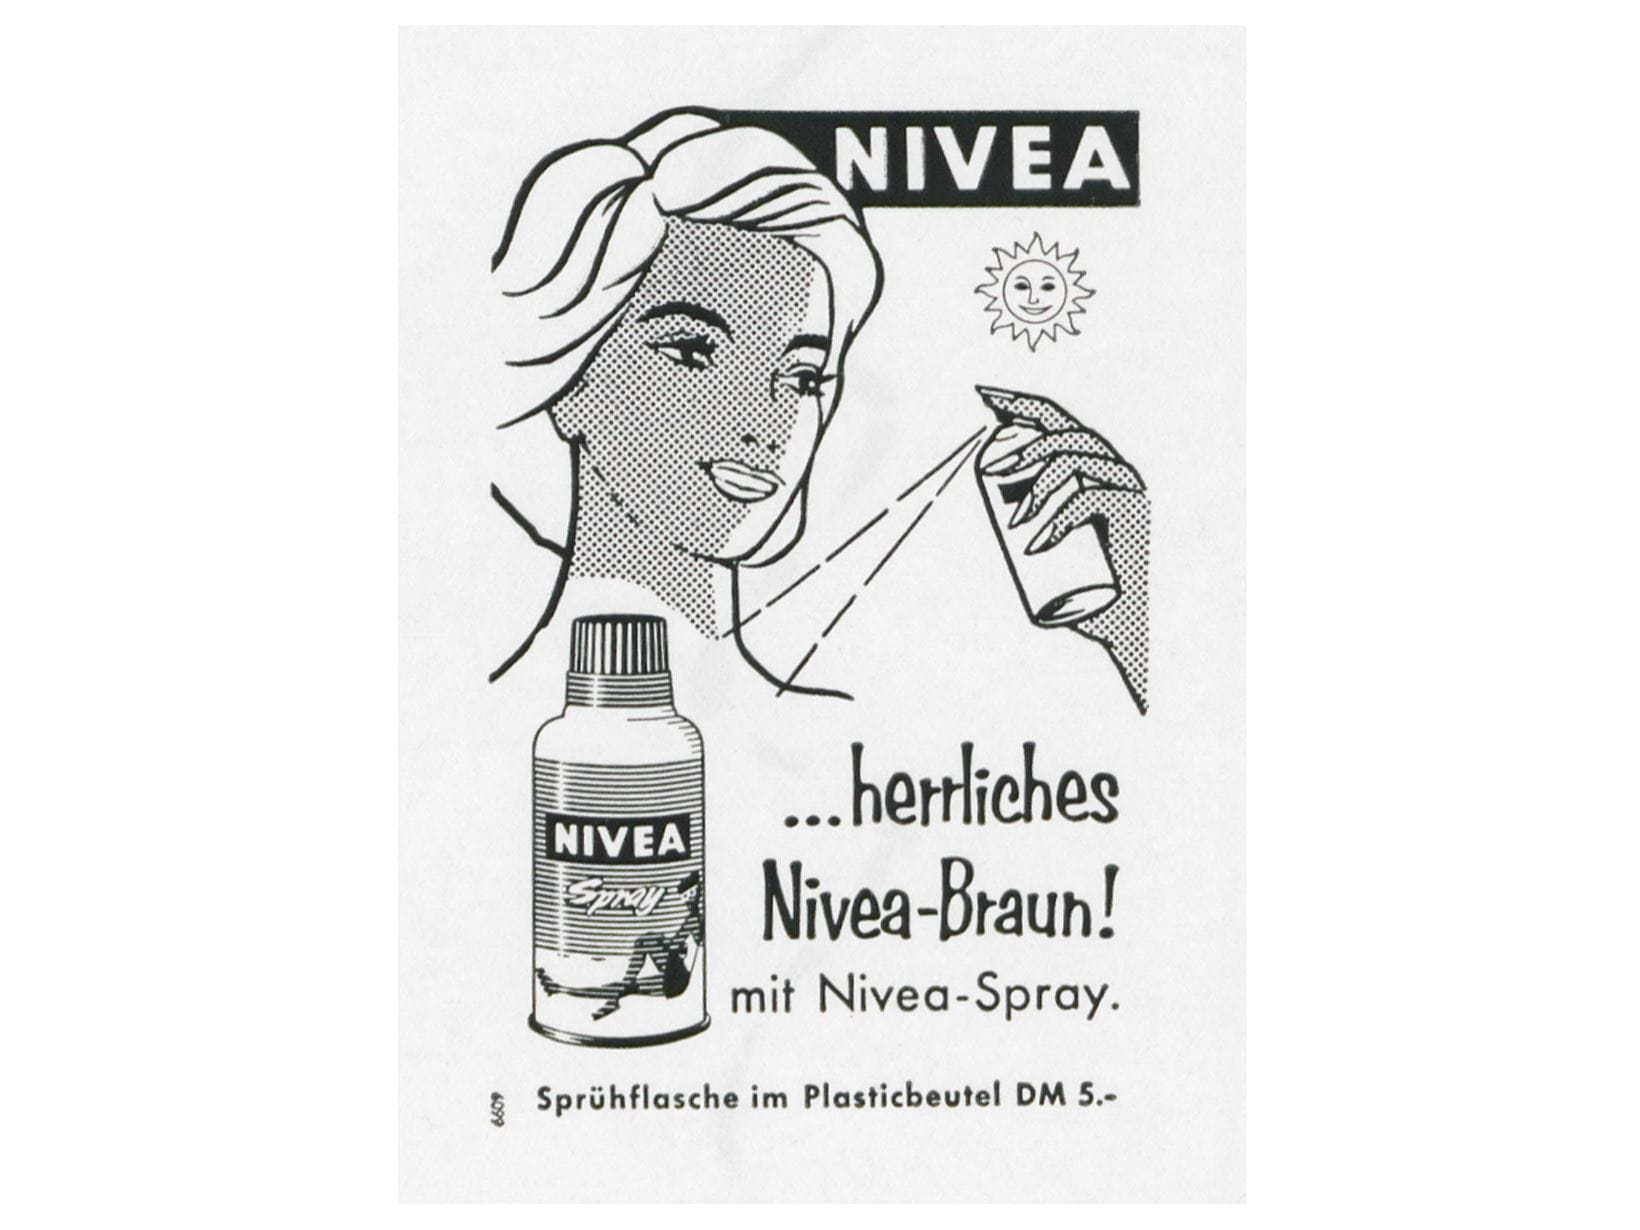 NIVEA Spray 1959